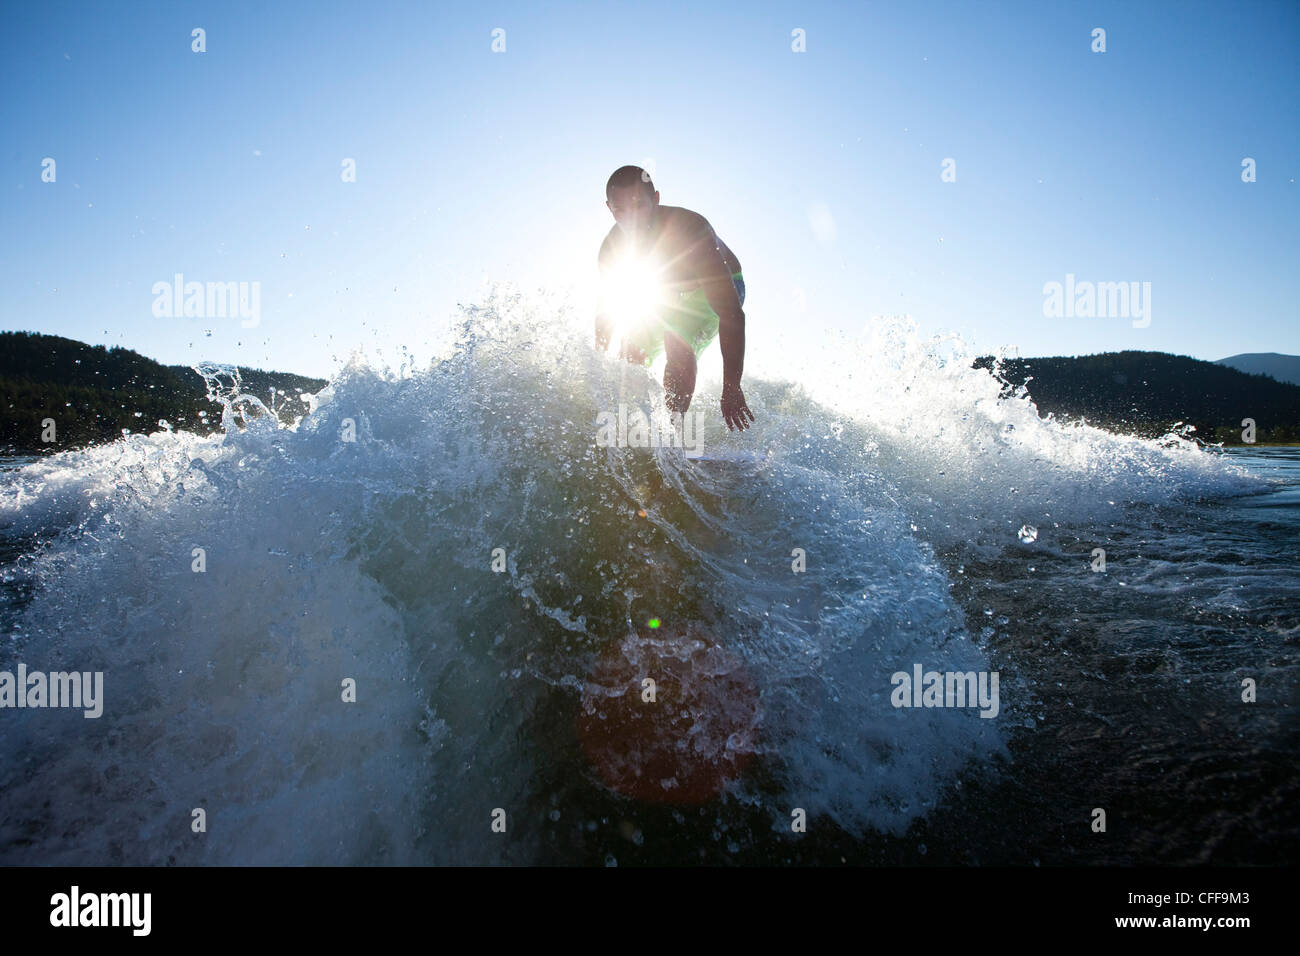 A athletic male surfing behind a wakeboard boat at sunset in Idaho. - Stock Image